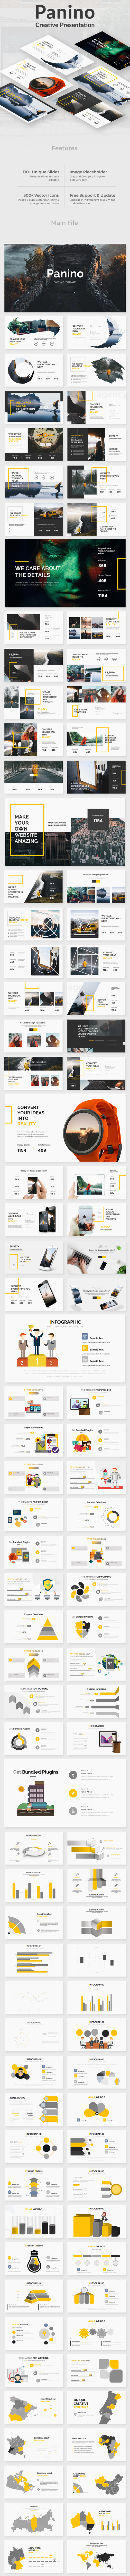 Panino Creative Design Powerpoint Template - Creative PowerPoint Templates